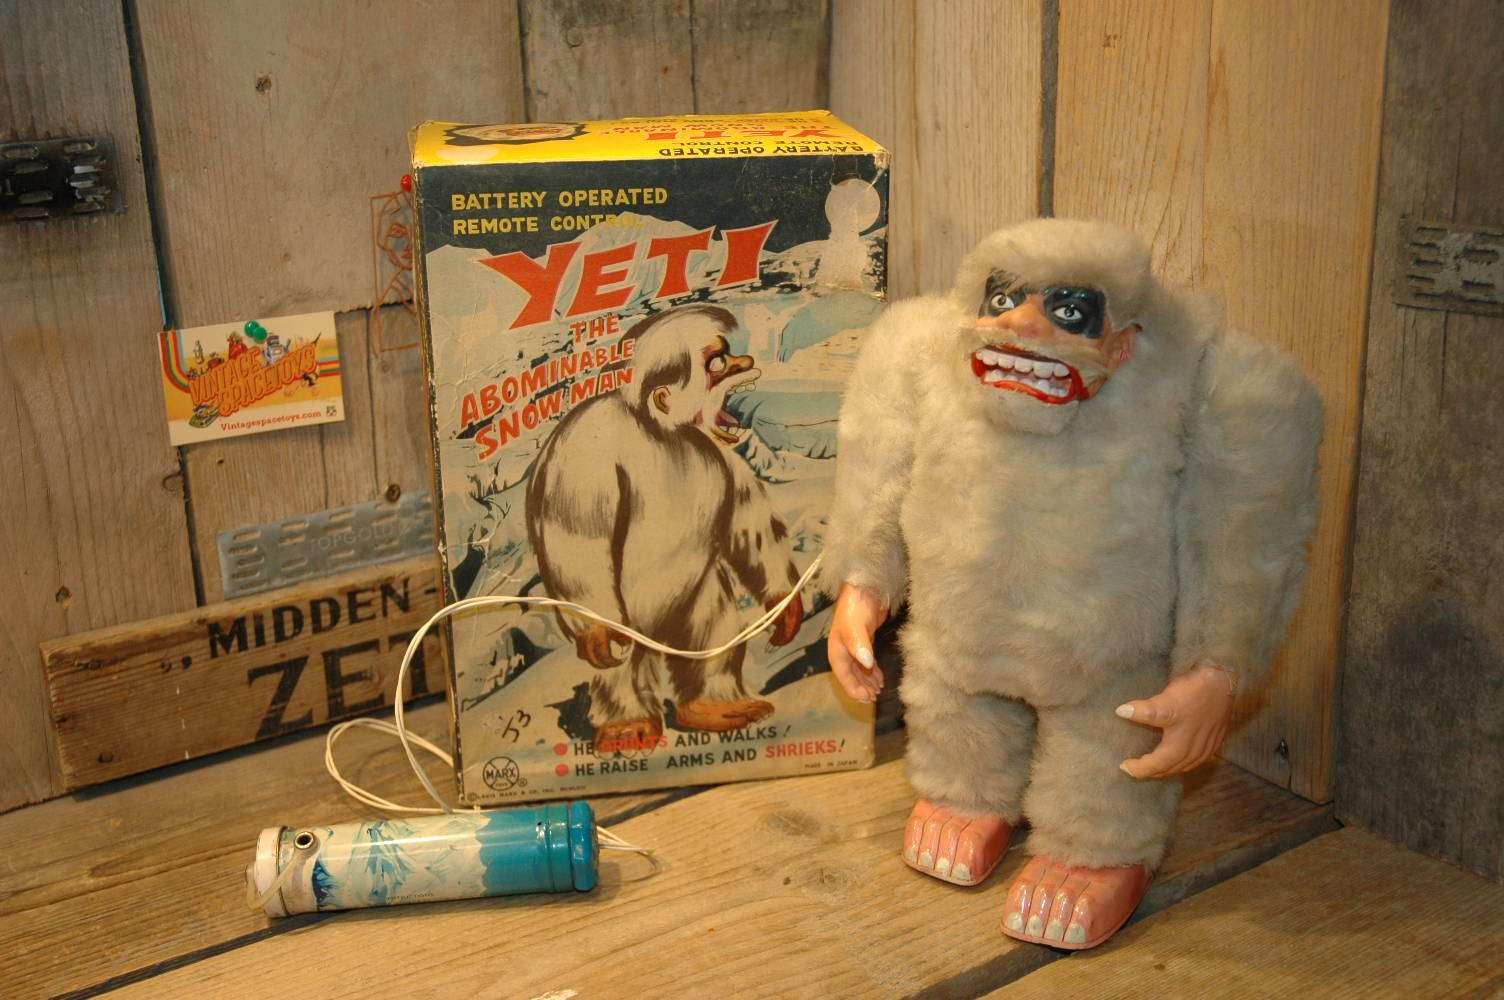 Marx Toys - Yeti The Abominable Snow Man